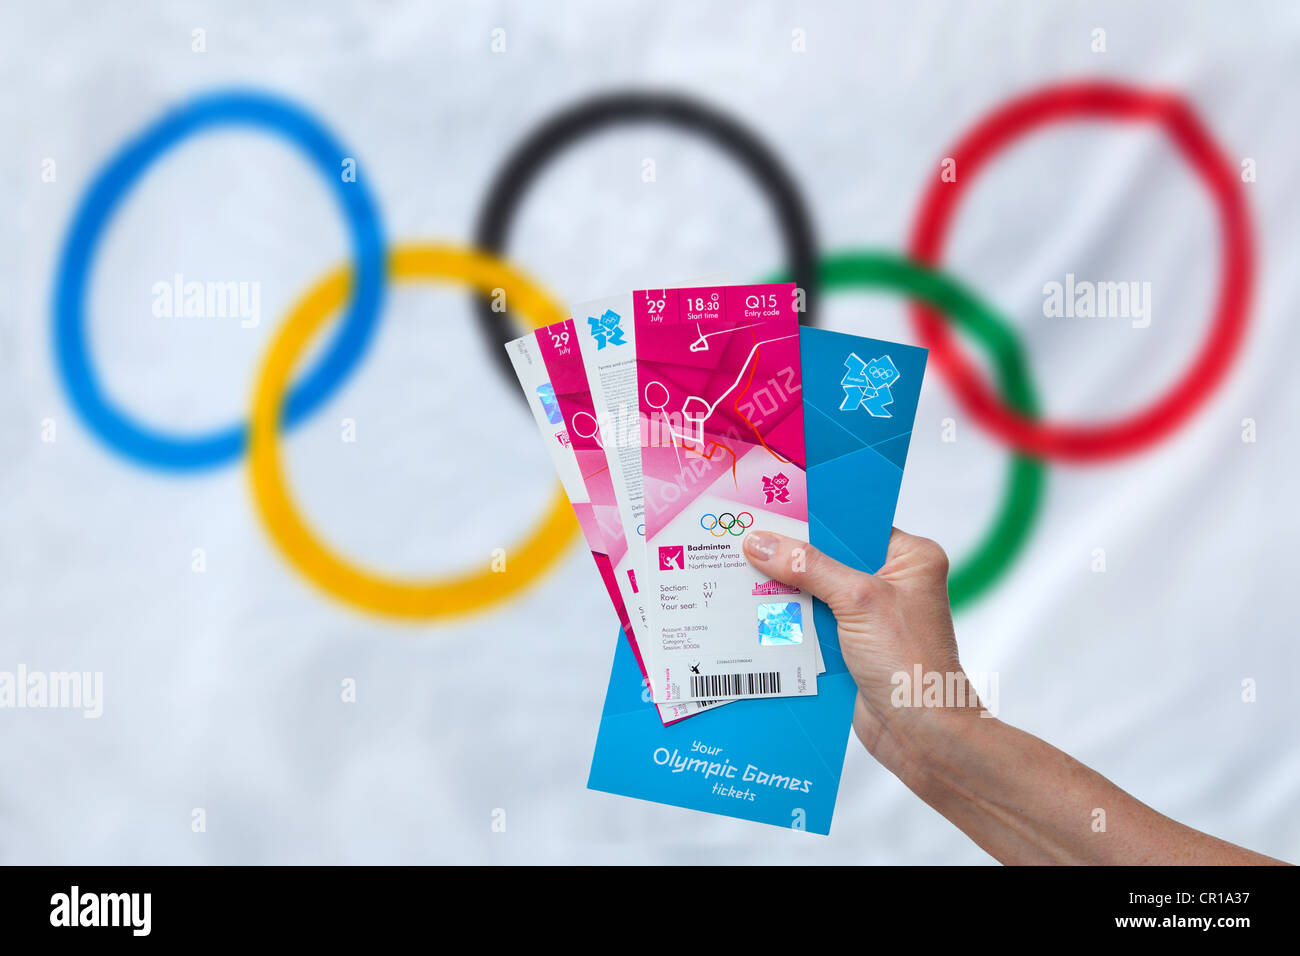 Person holding their Olympic tickets for the London 2012 Games with the Olympic flag in background - Stock Image